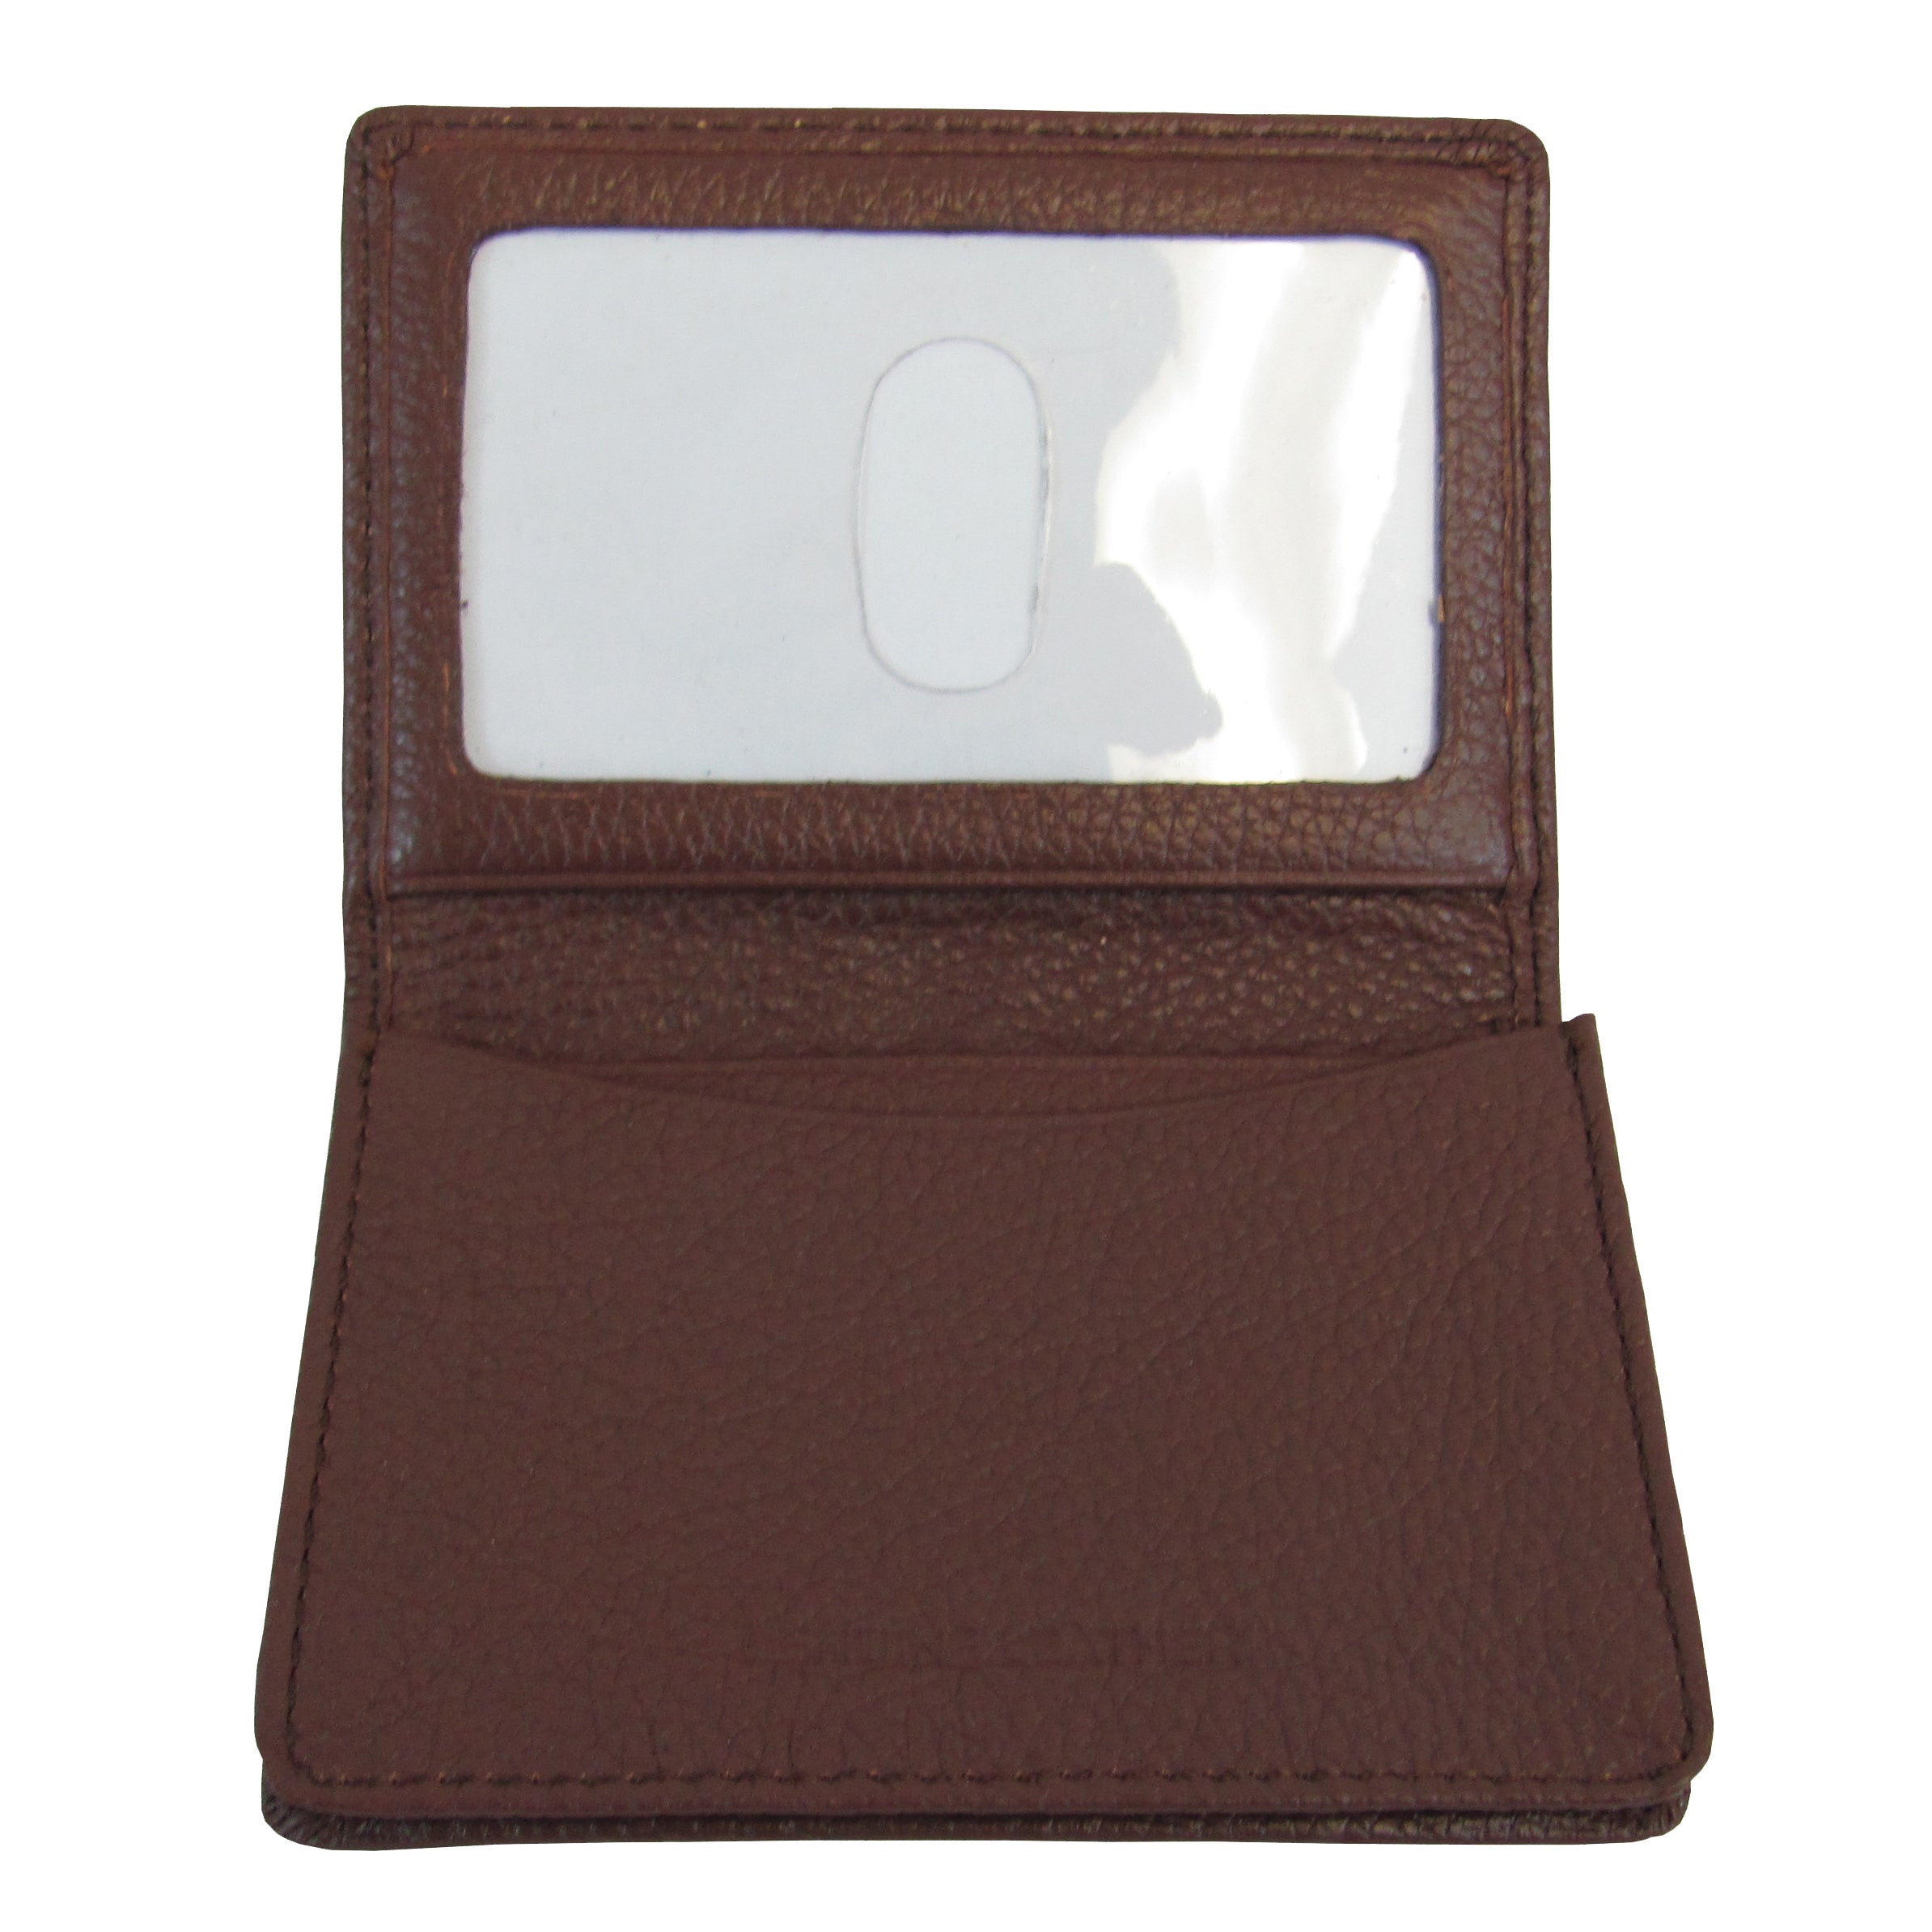 Shop Amerileather Leather ID and Business Card Holder - On Sale ...